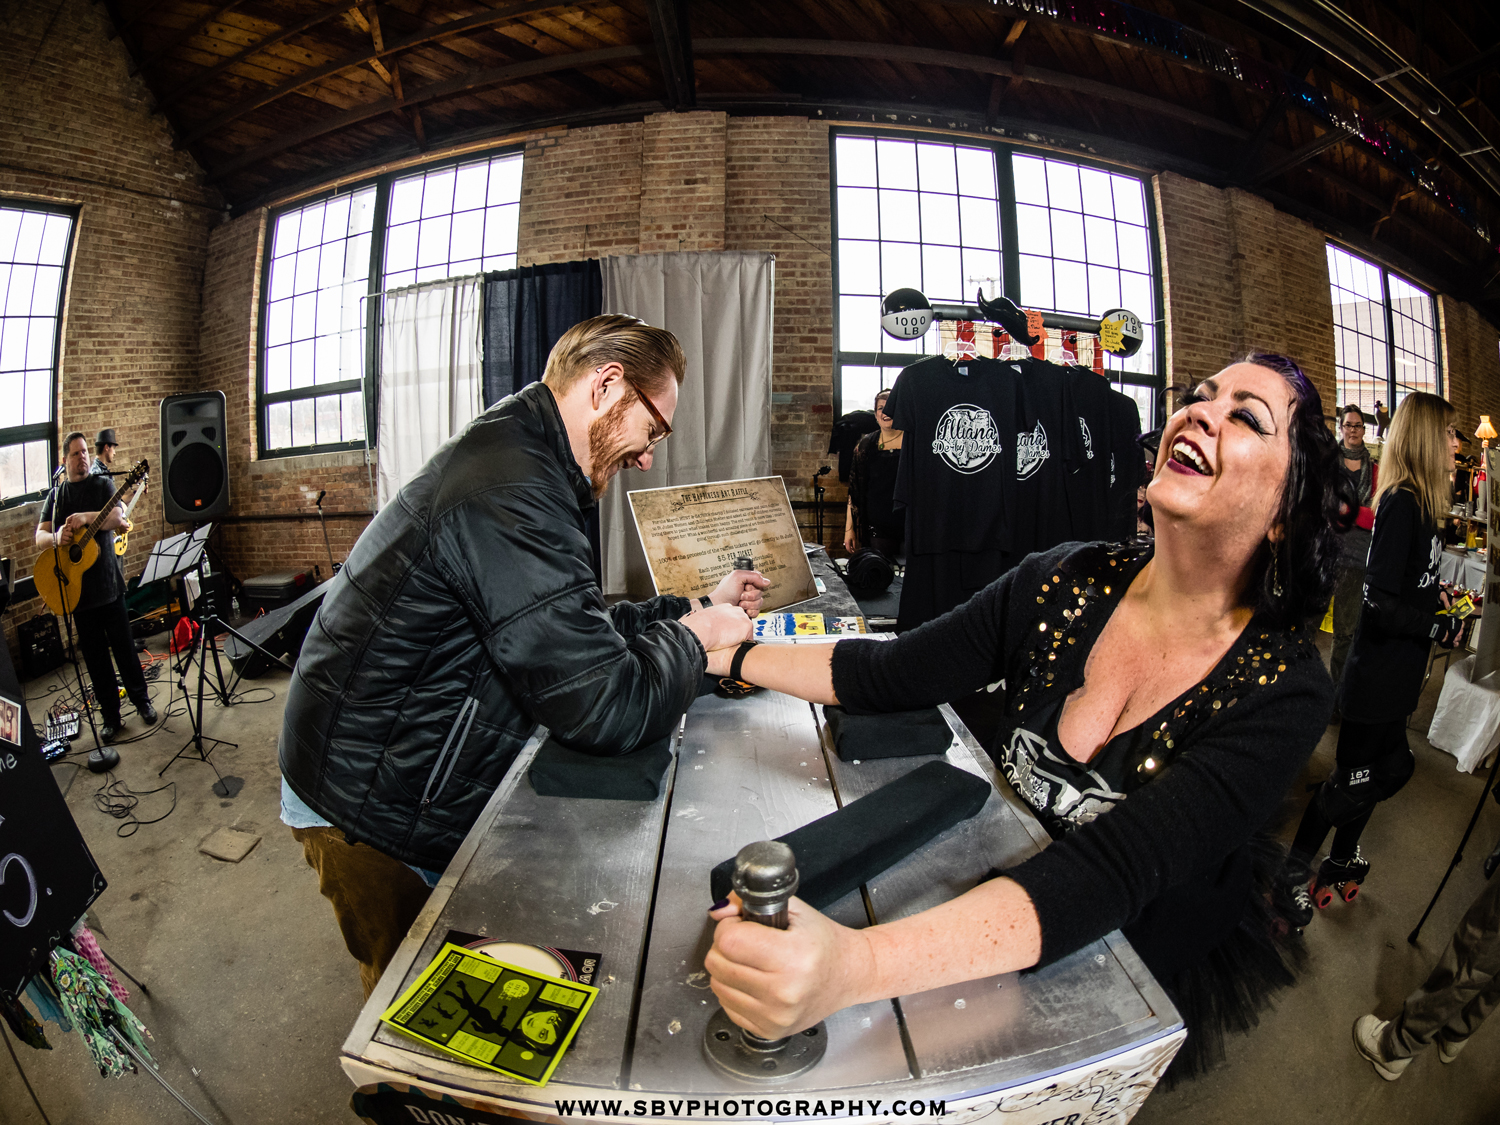 Roller derby girls arm wrestle for charity.